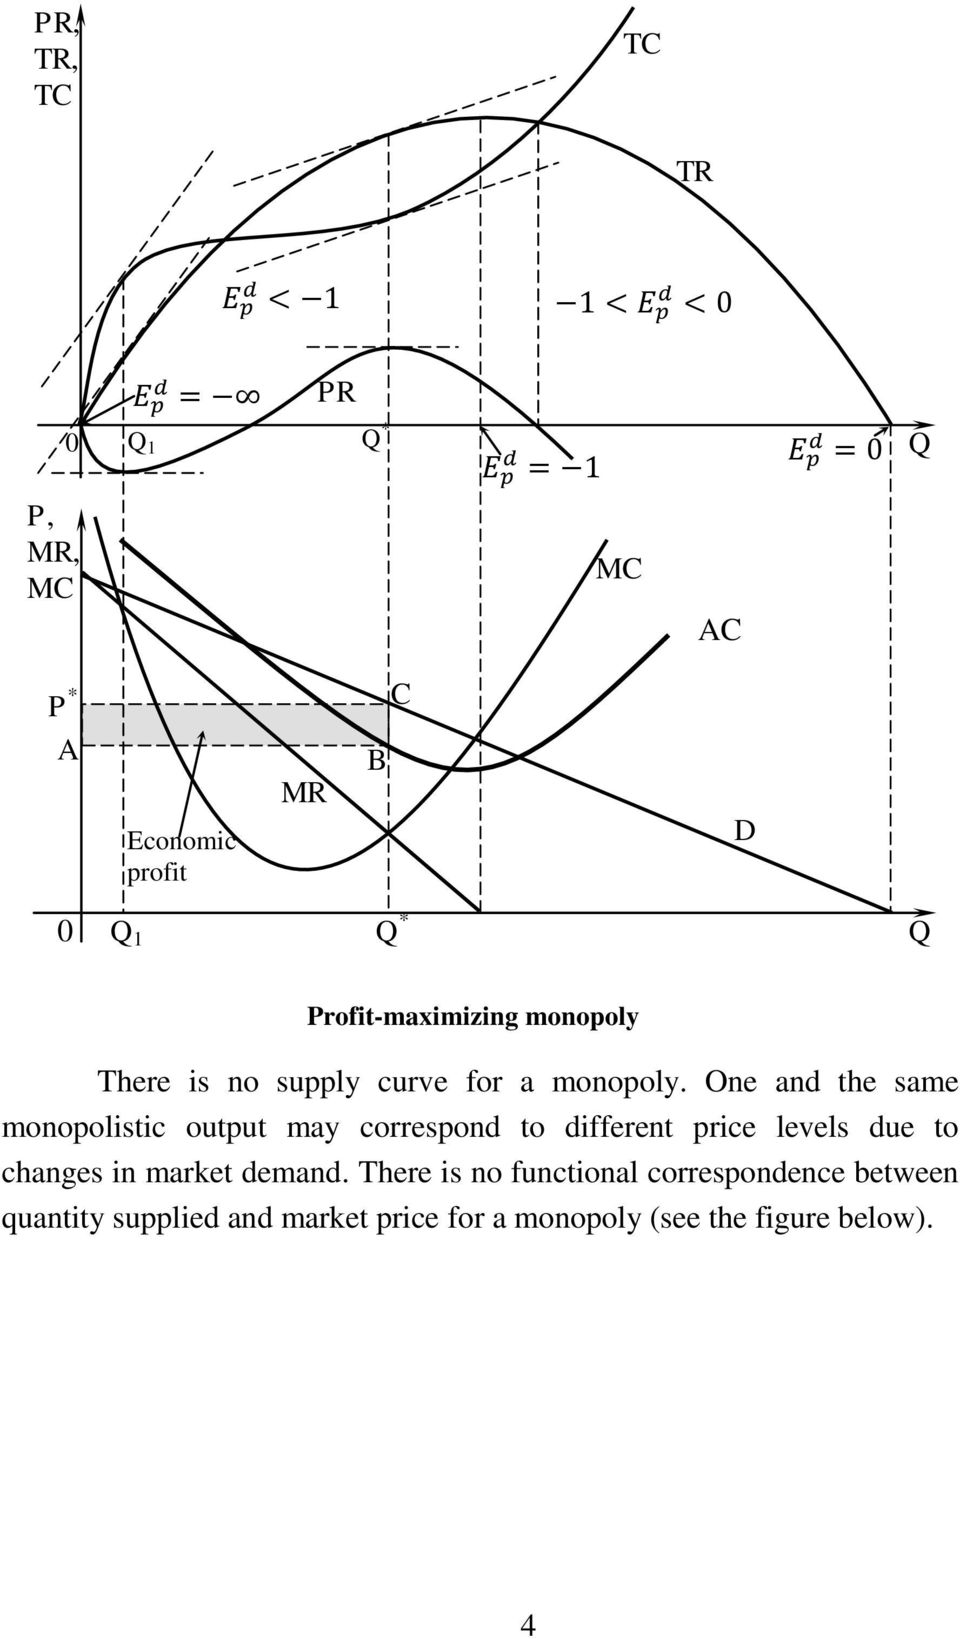 One and the same monopolistic output may correspond to different price levels due to changes